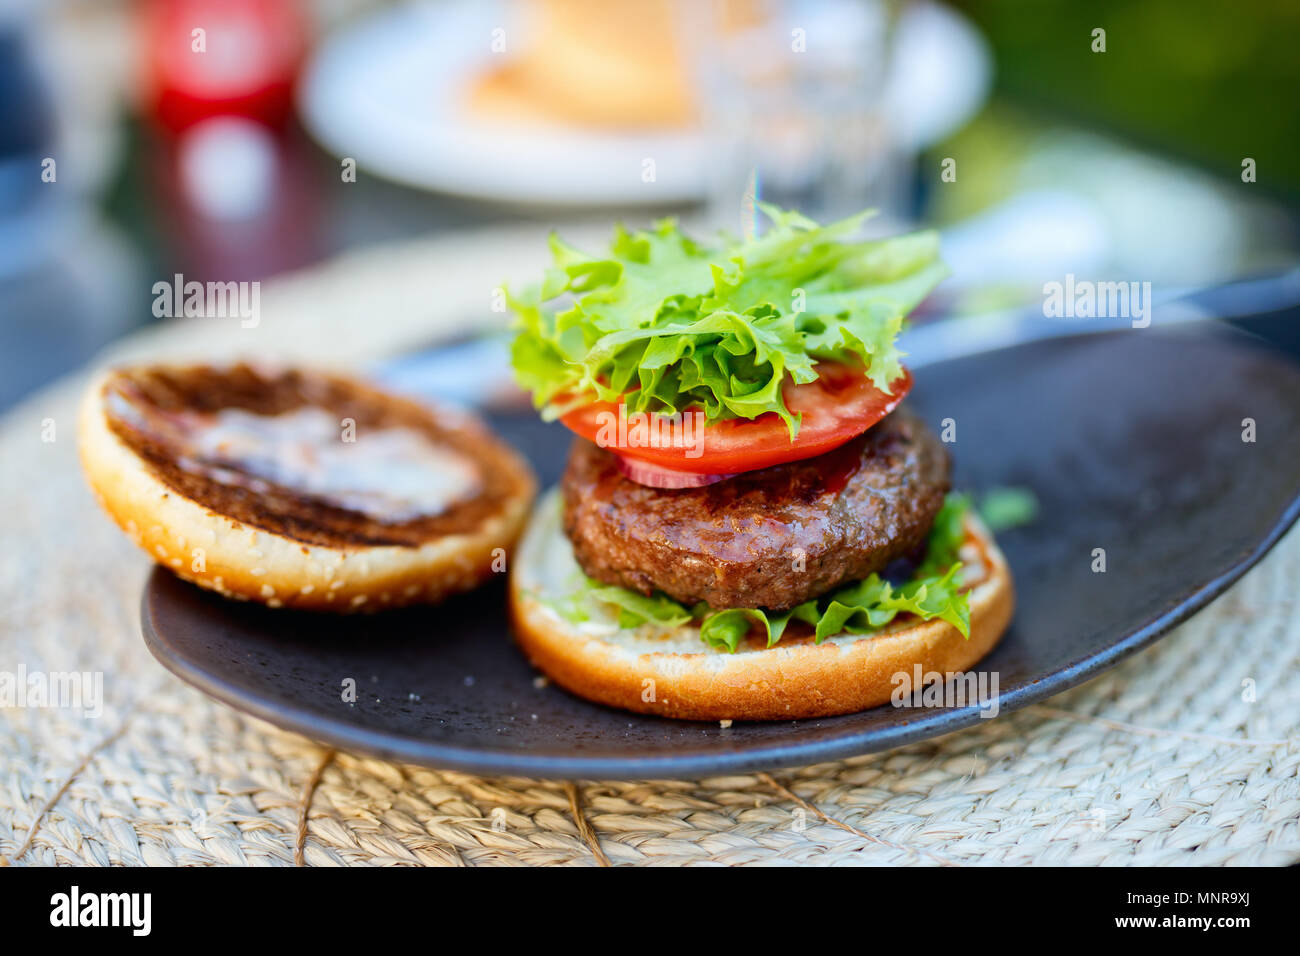 Close up assembling of delicious fresh burger with tomato and fresh green salad - Stock Image